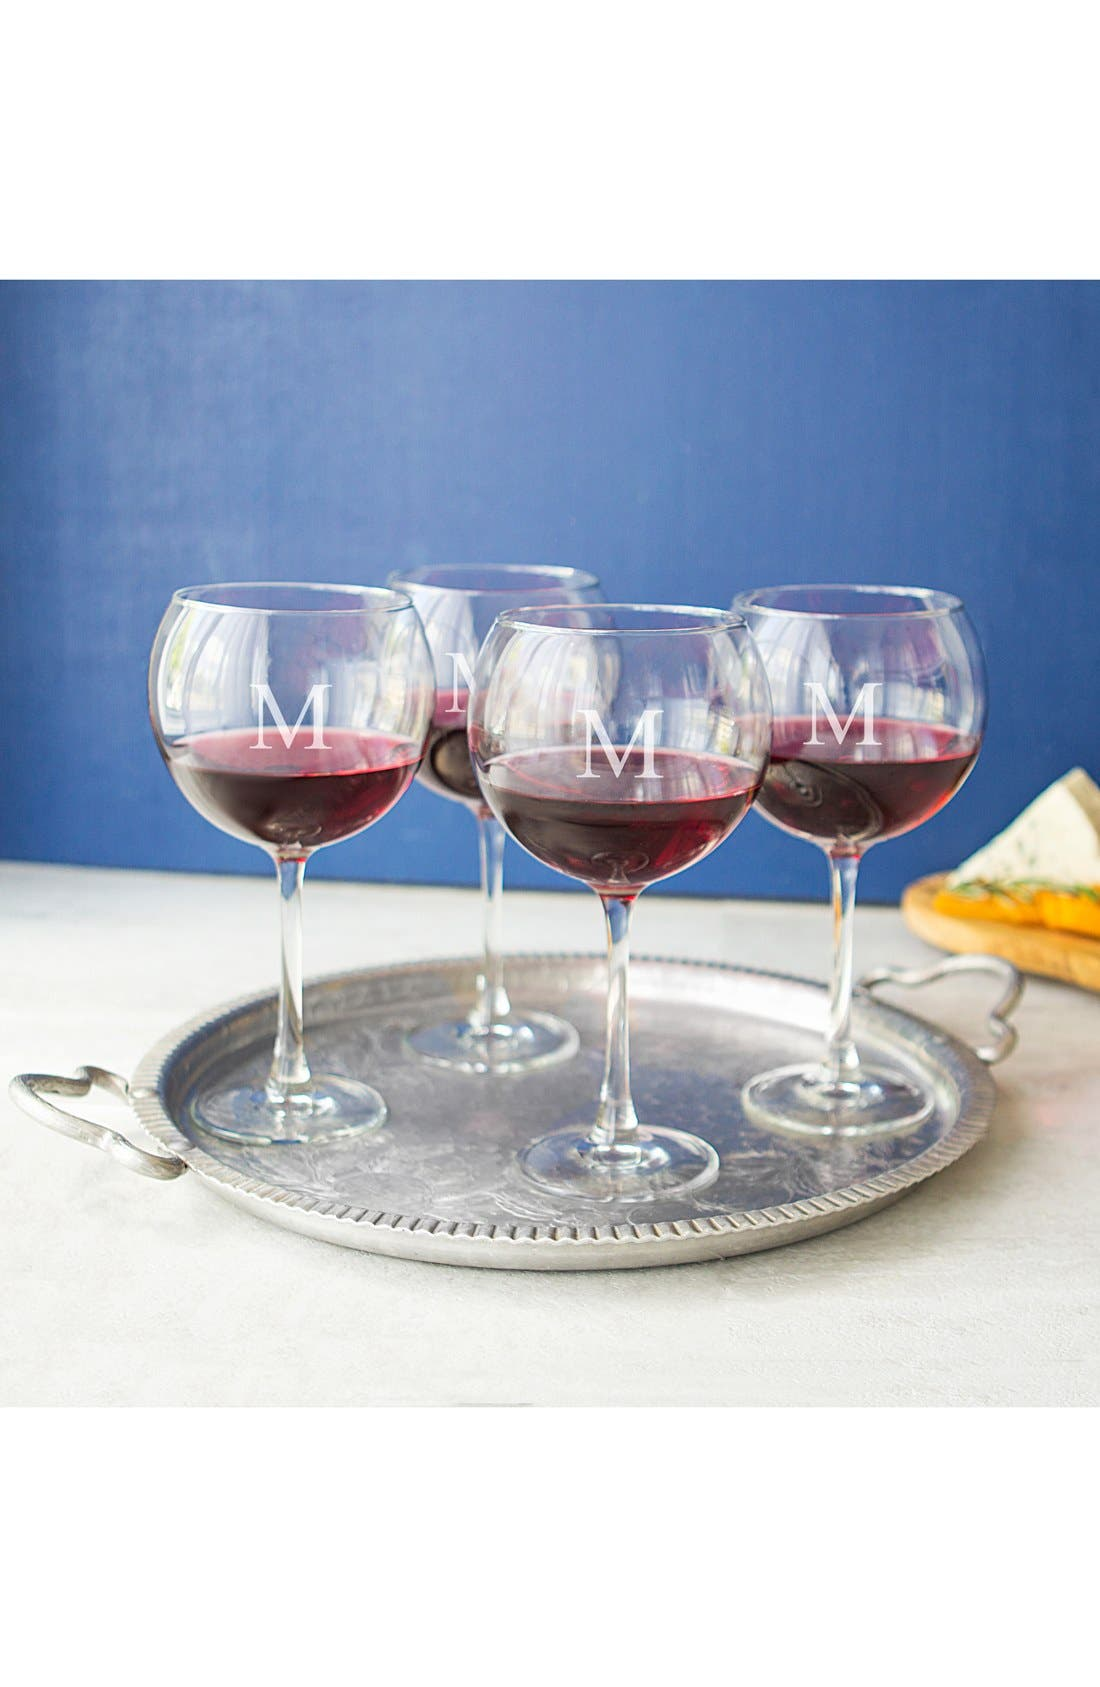 Alternate Image 1 Selected - Cathy's Concepts Set of 4 Personalized Red Wine Glasses